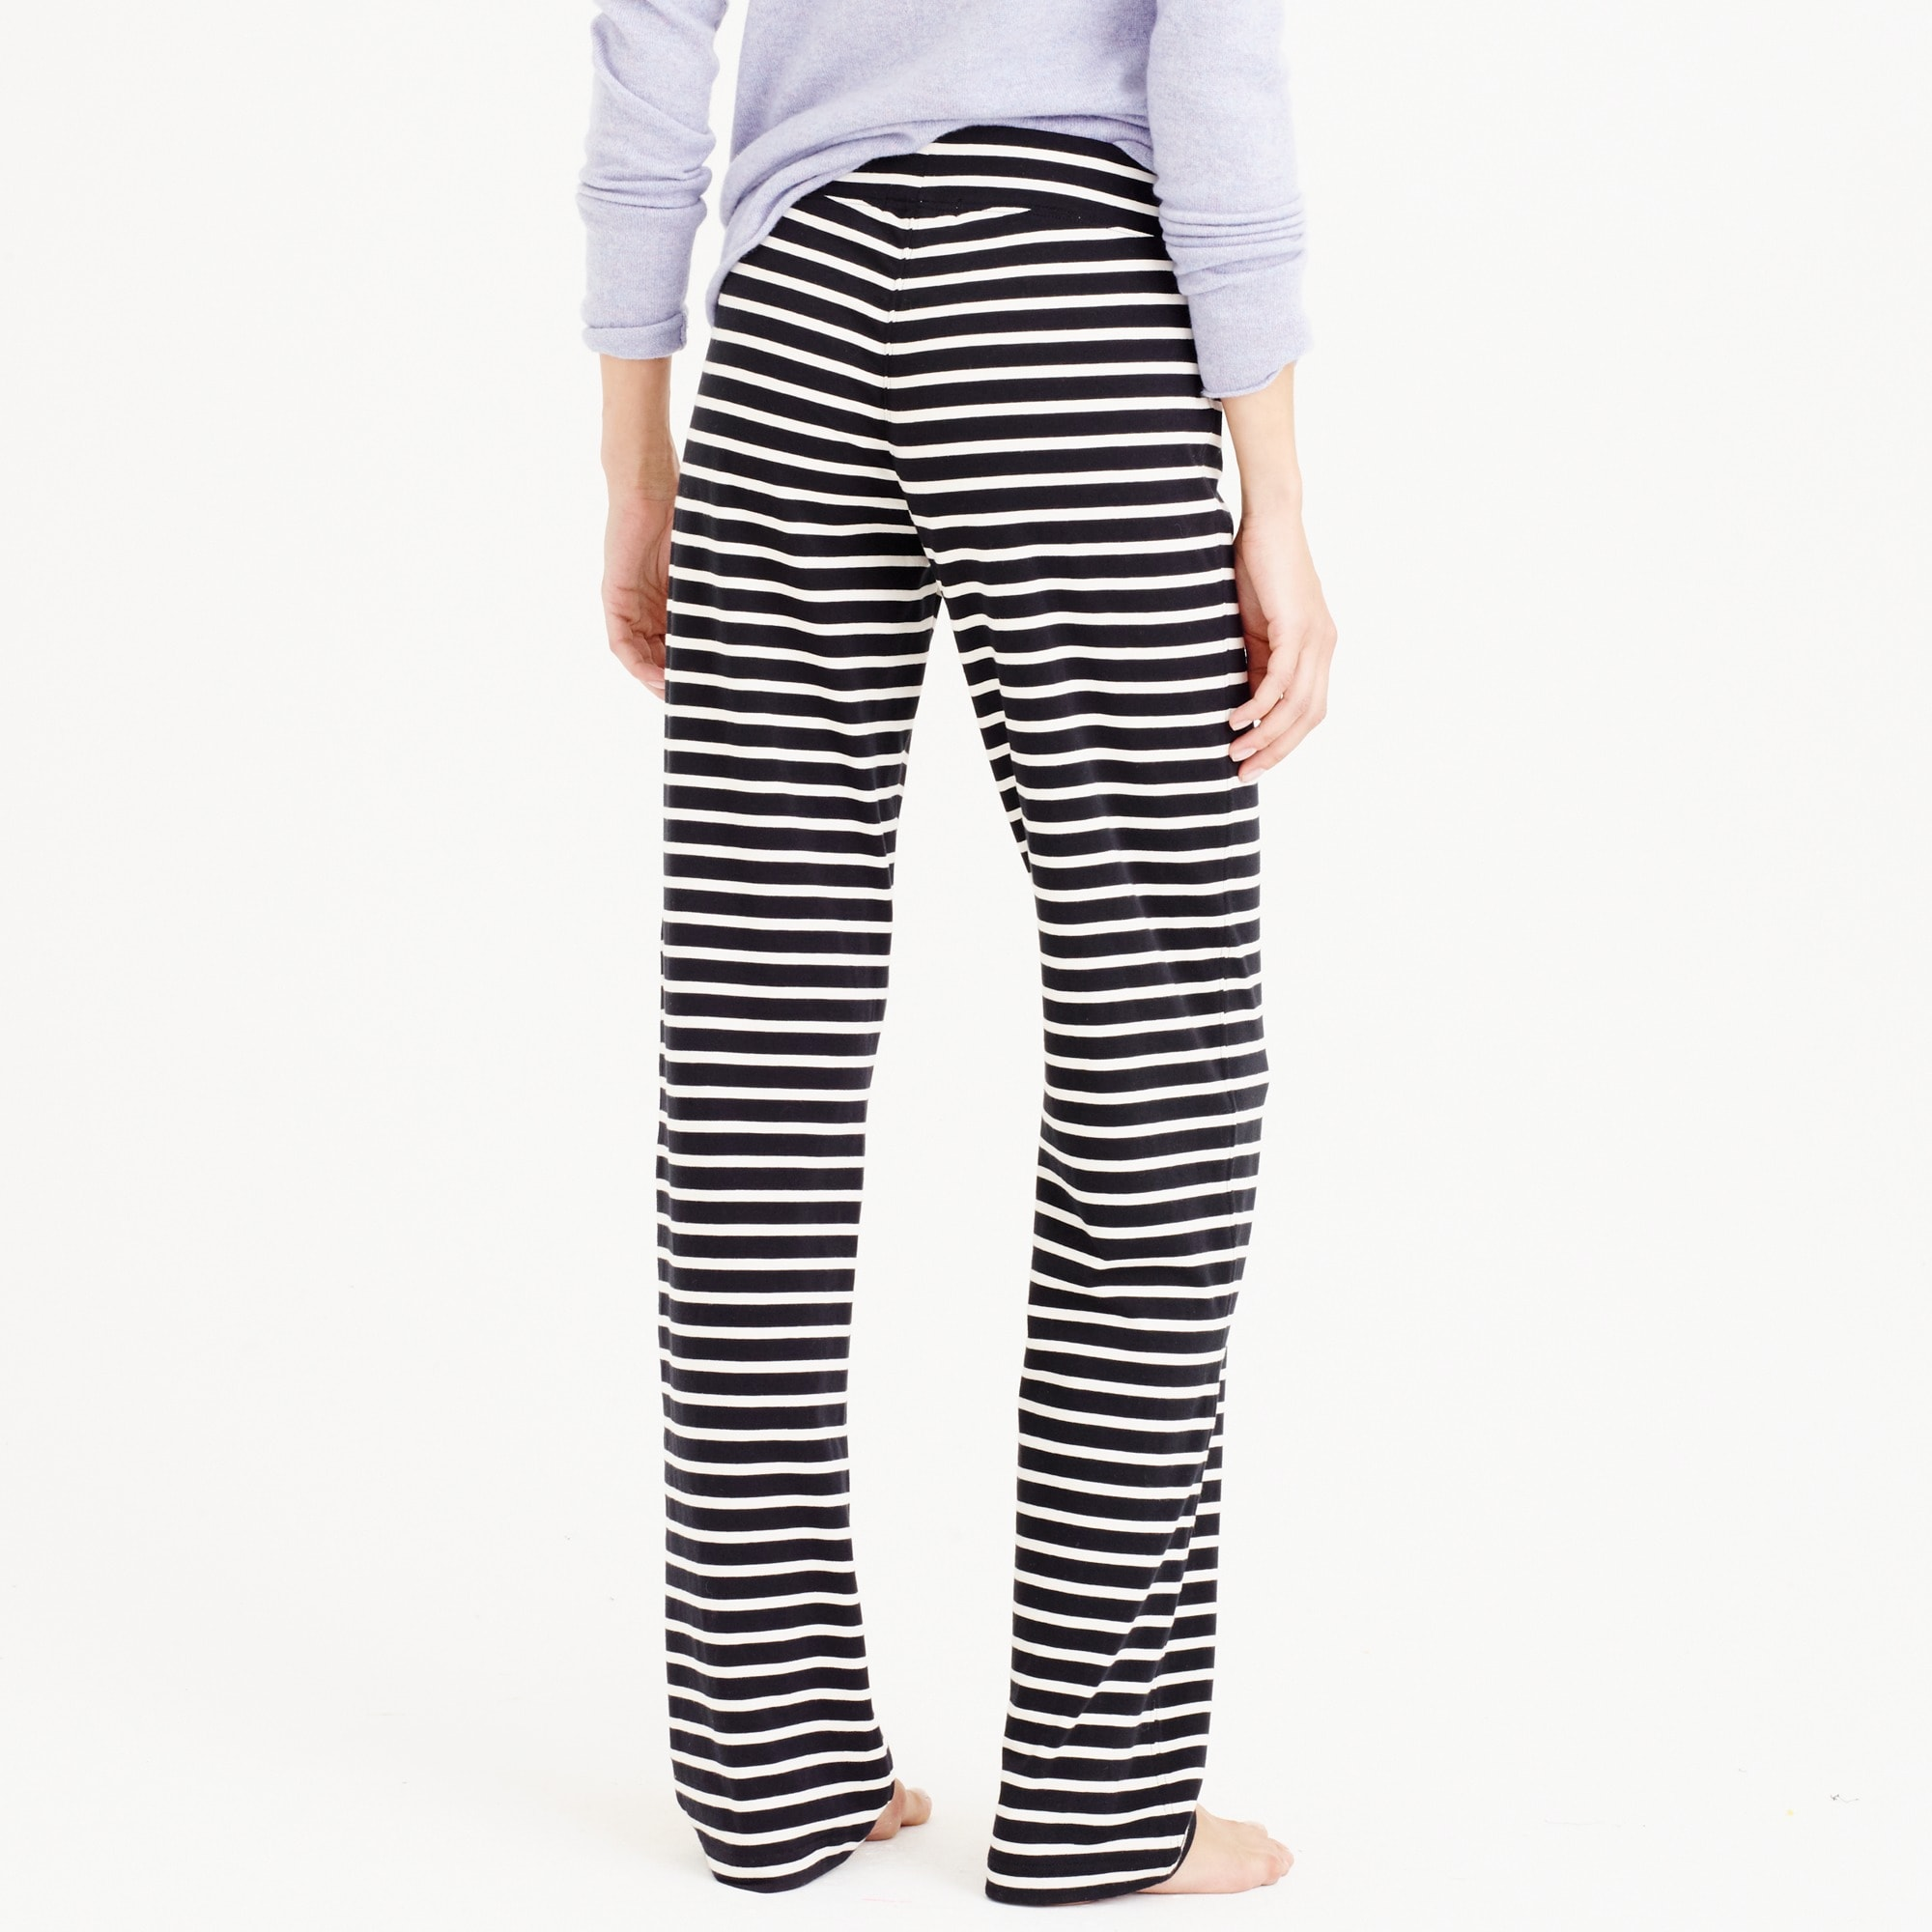 Image 2 for Tall dreamy cotton pant in stripe